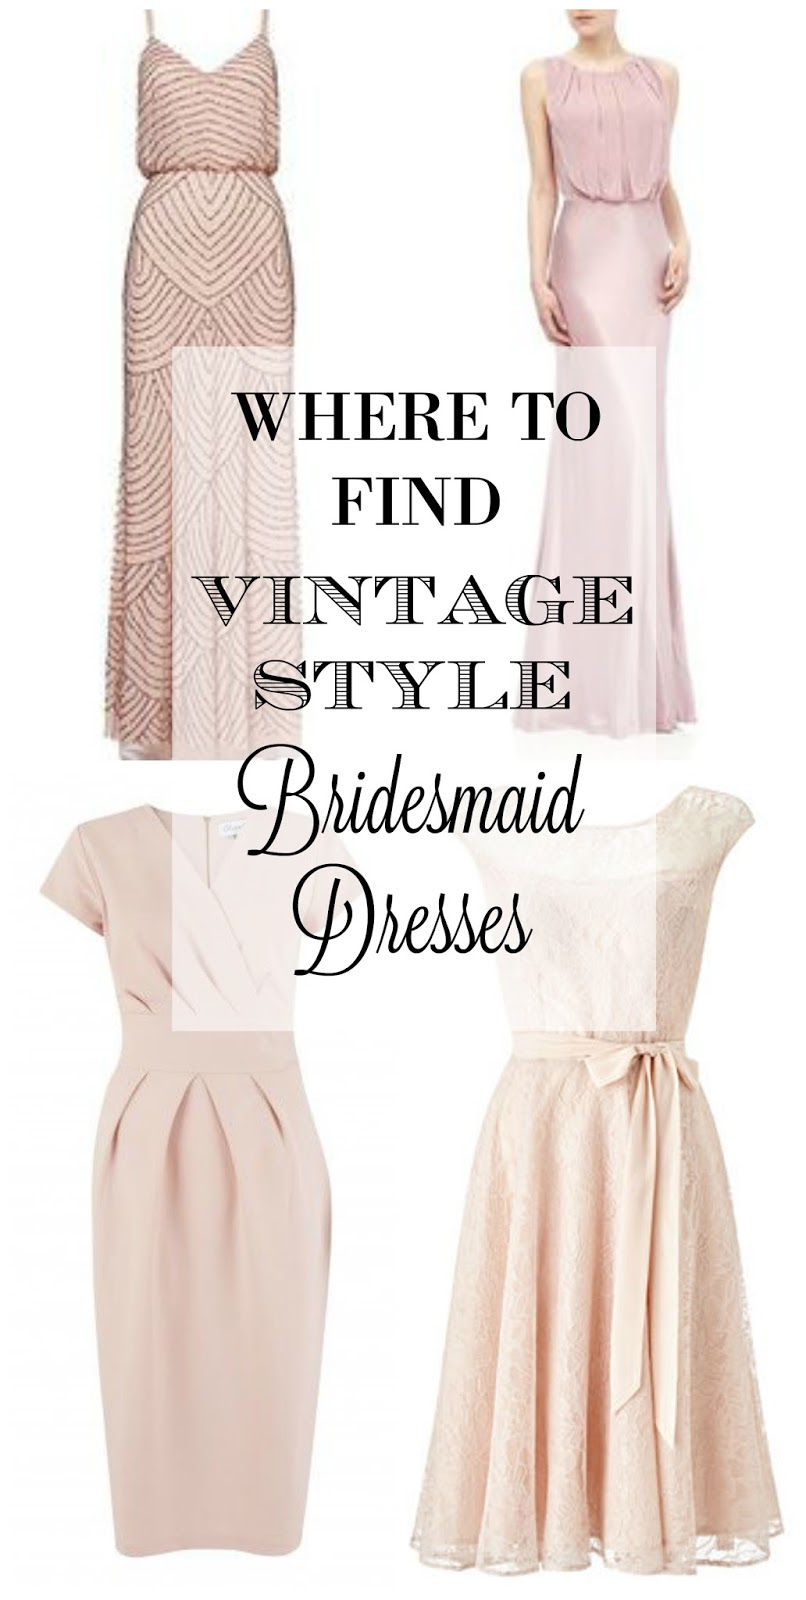 Where to find vintage style bridesmaid dresses online and on the high street